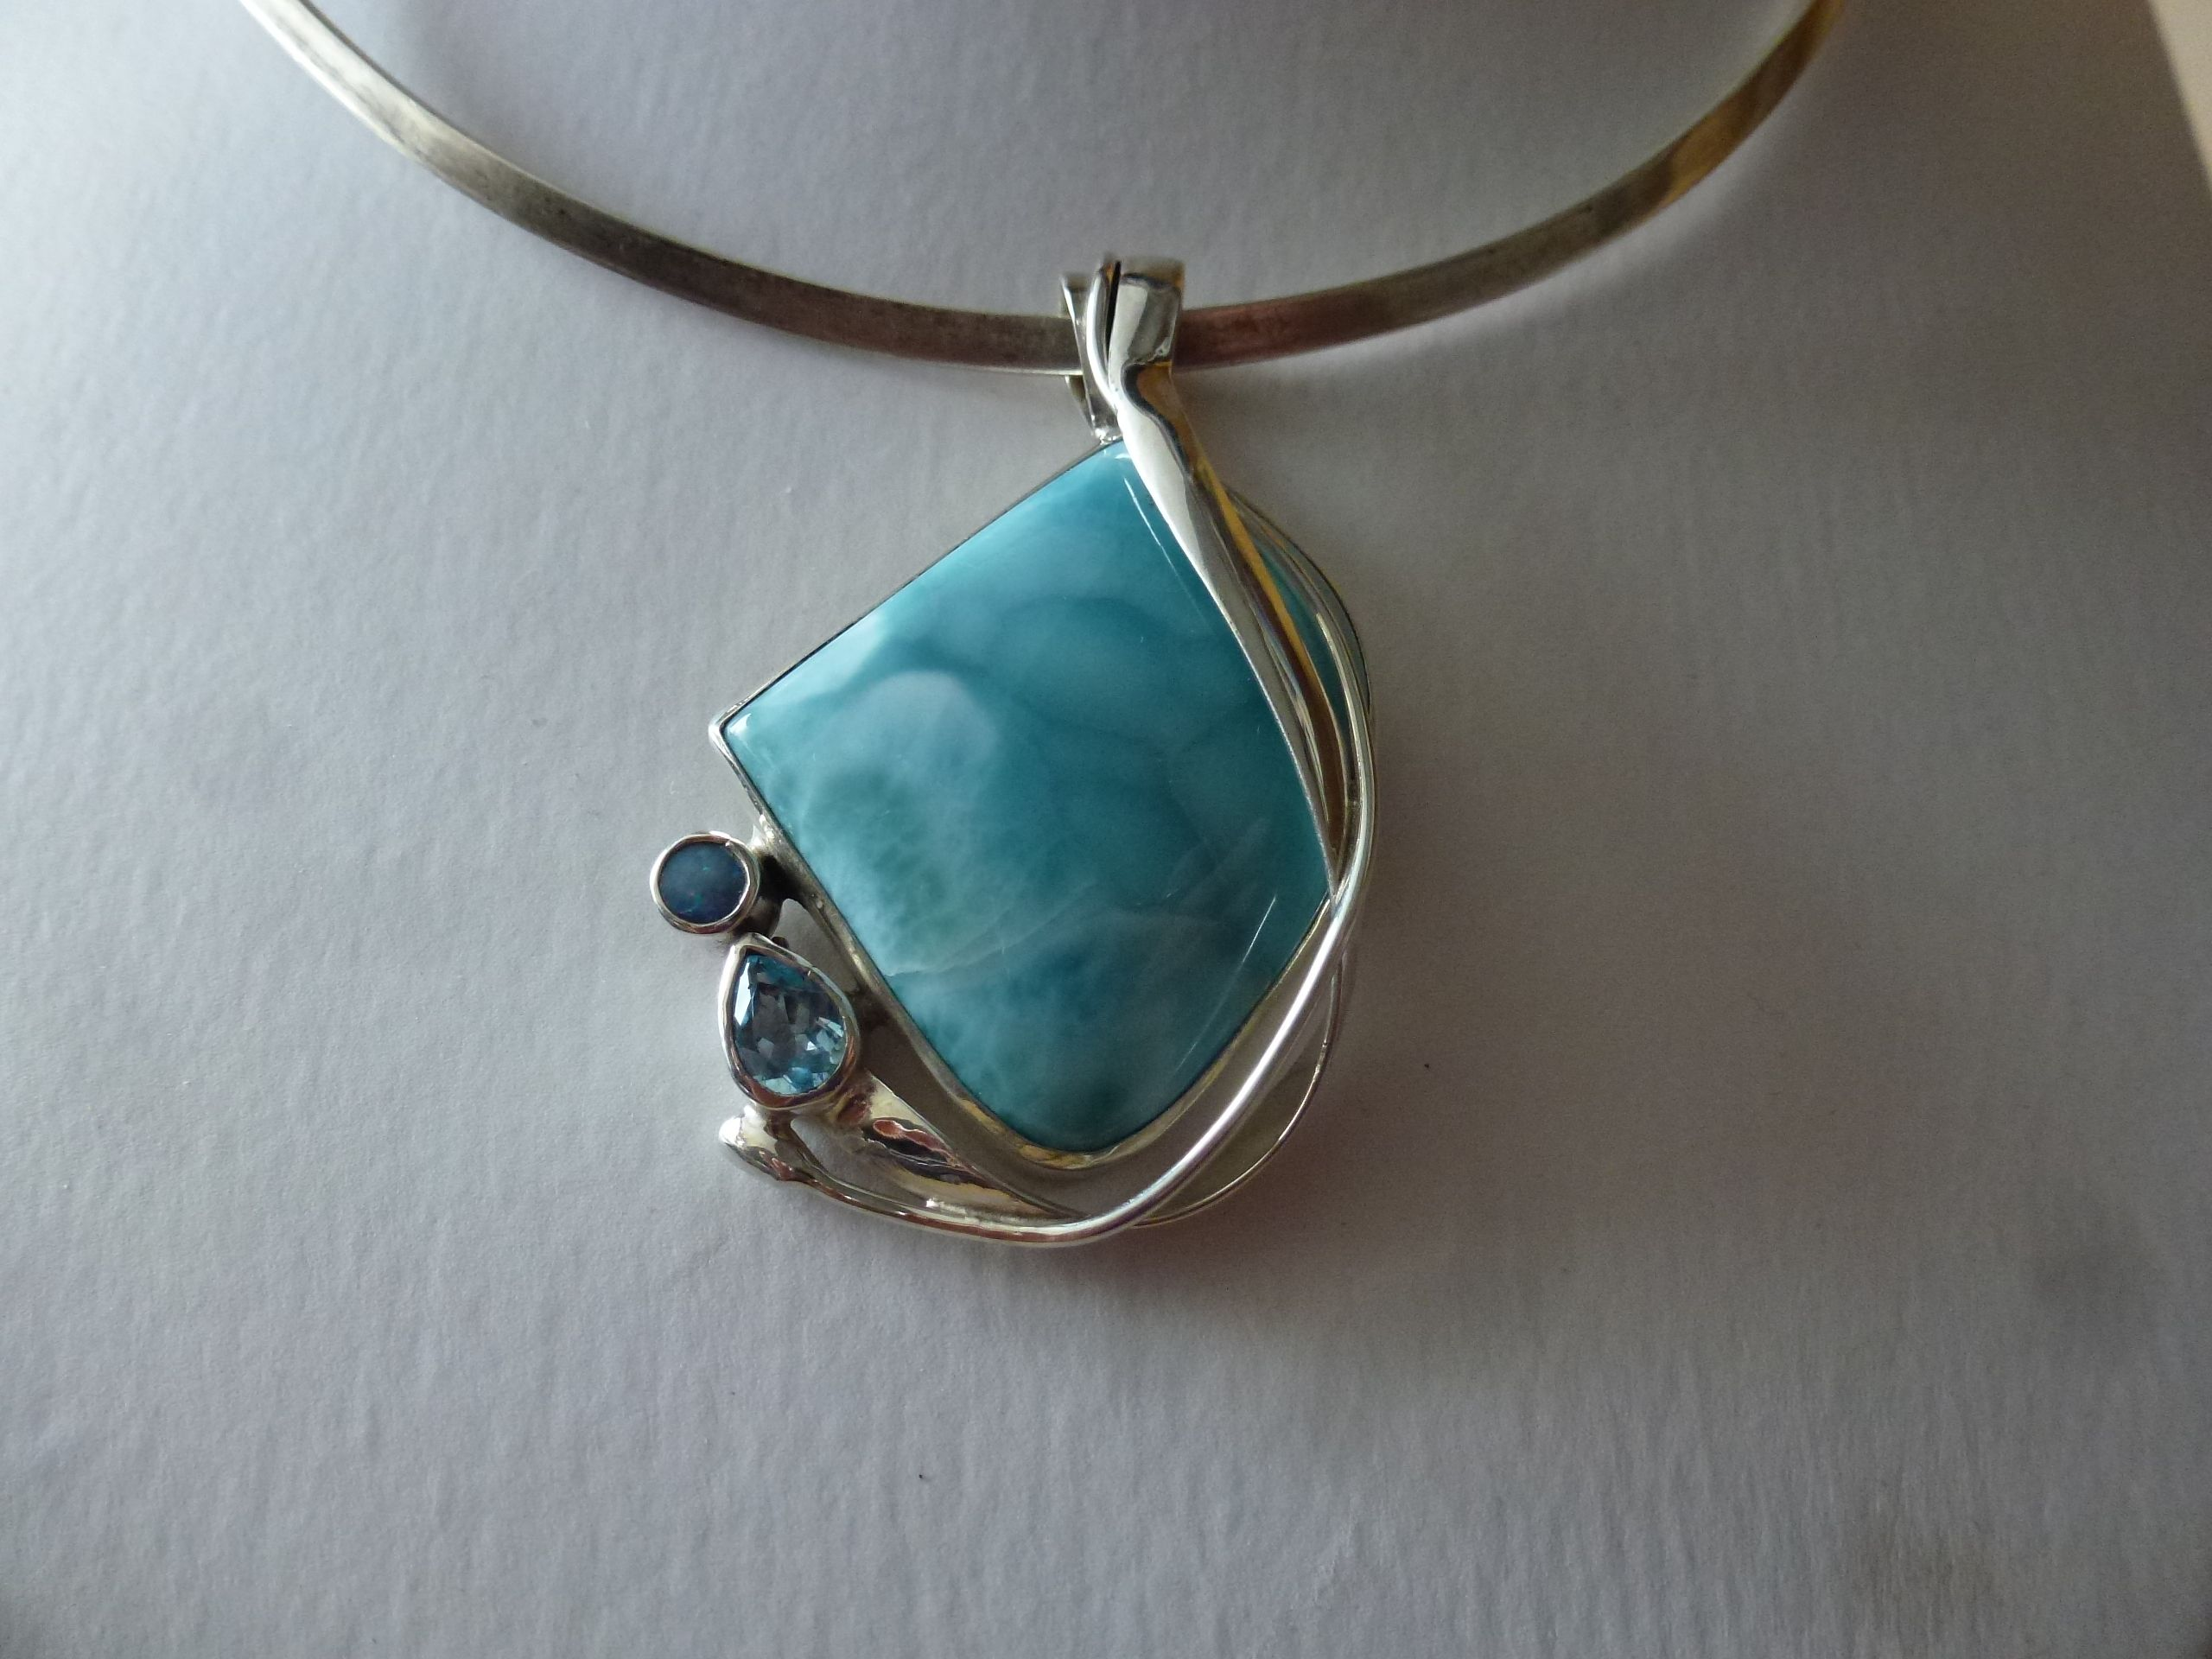 Pendant with 3 different stones set in silver in an assymetric design